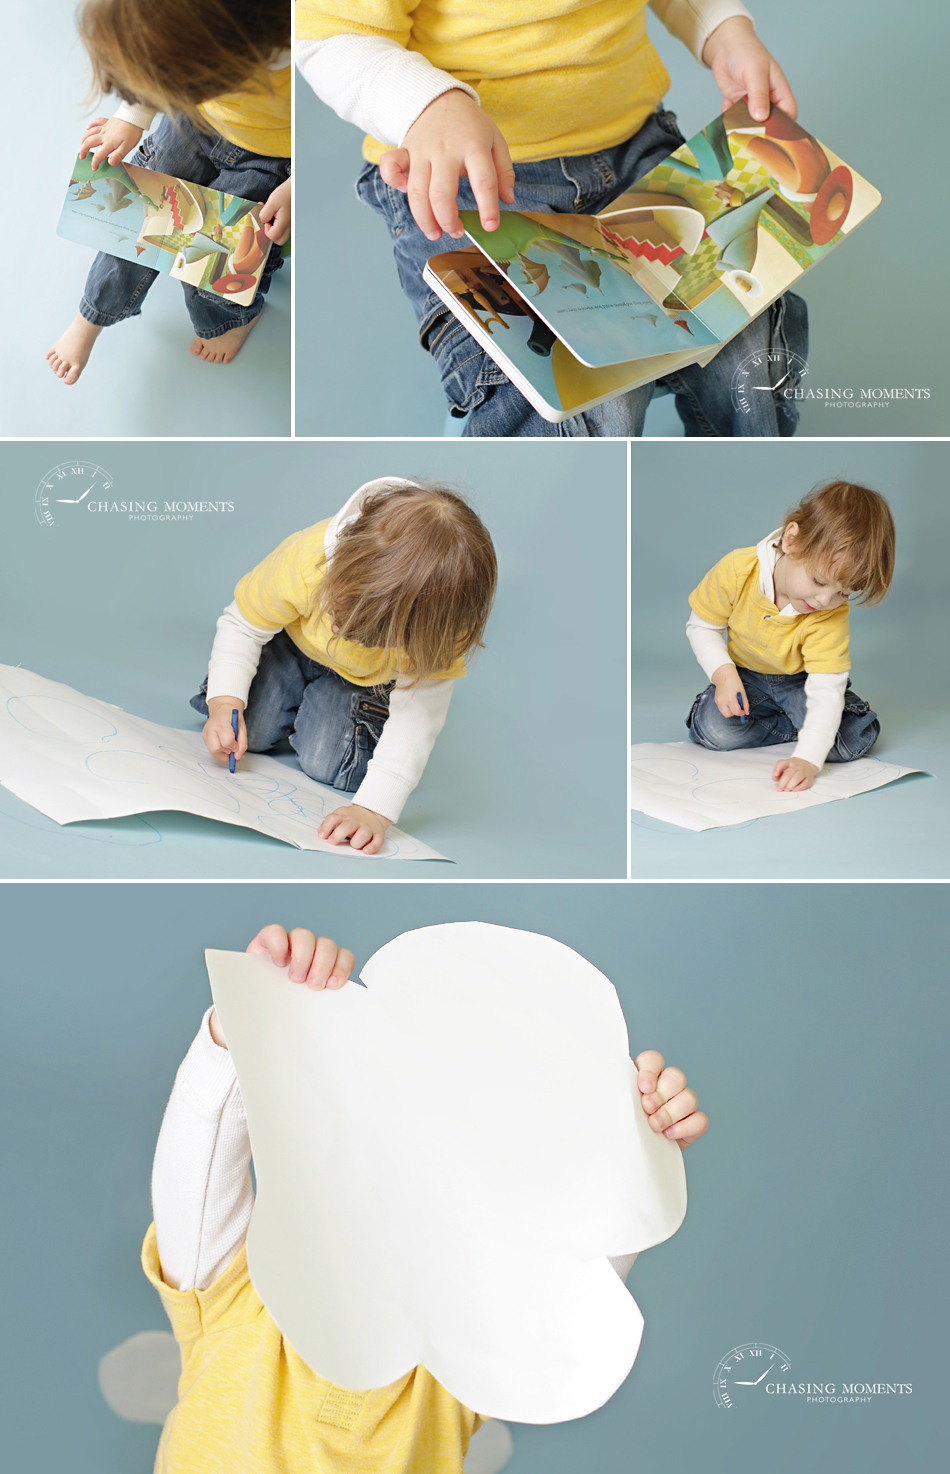 studio photography storytelling puff the magic dragon book